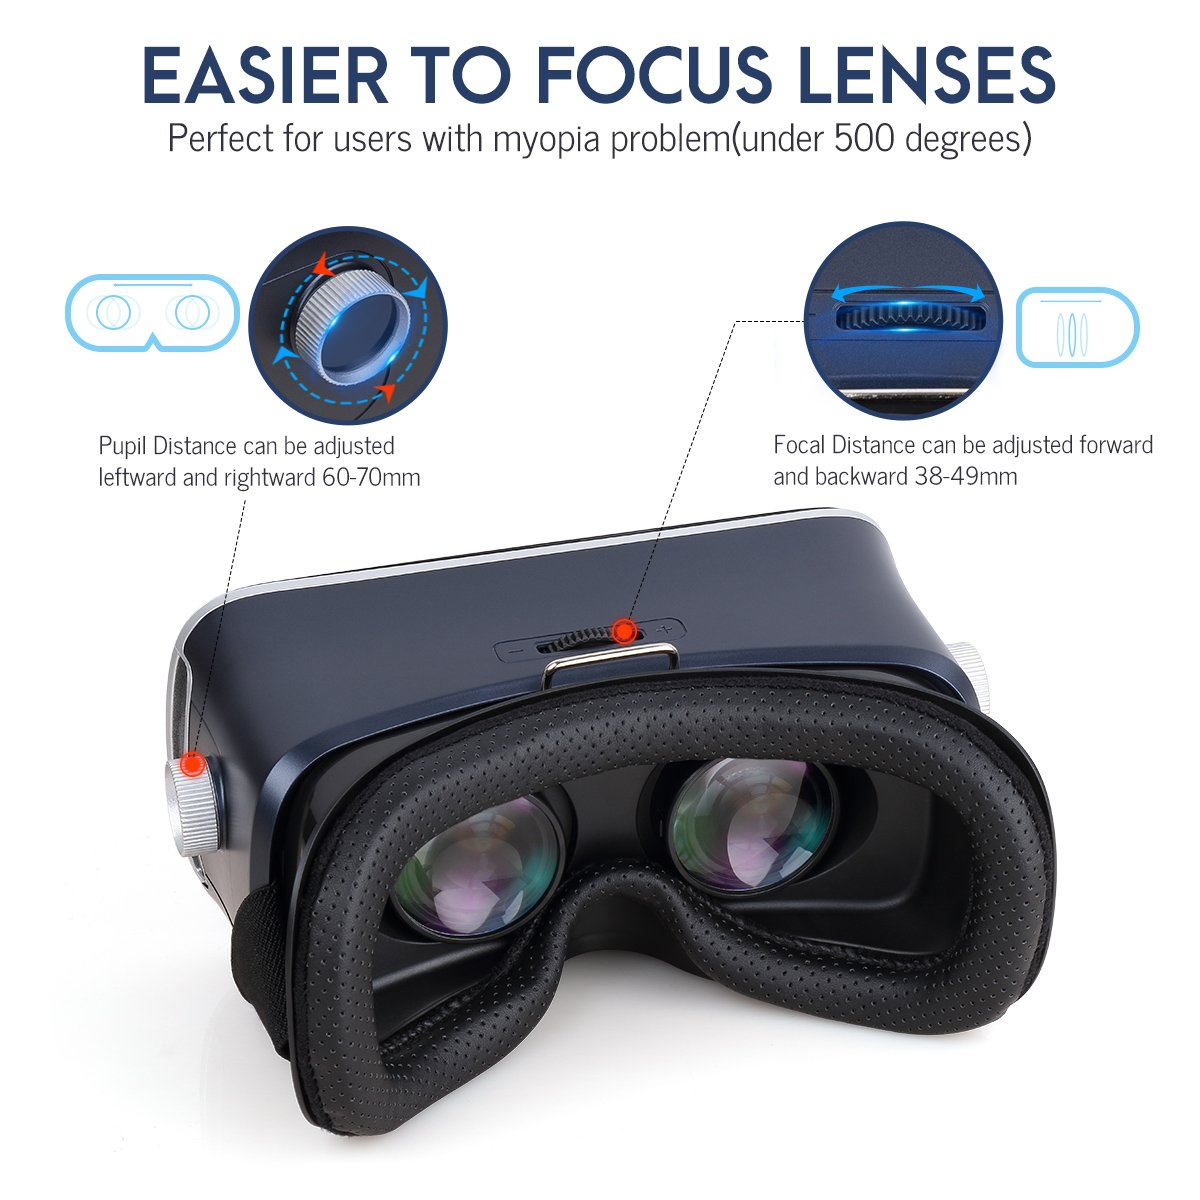 Pansonite 3D VR Glasses Virtual Reality Headset for Games & 3D Movies, Upgraded & Lightweight with Adjustable Pupil and Object Distance for IOS and Android Smartphone by Pansonite (Image #2)